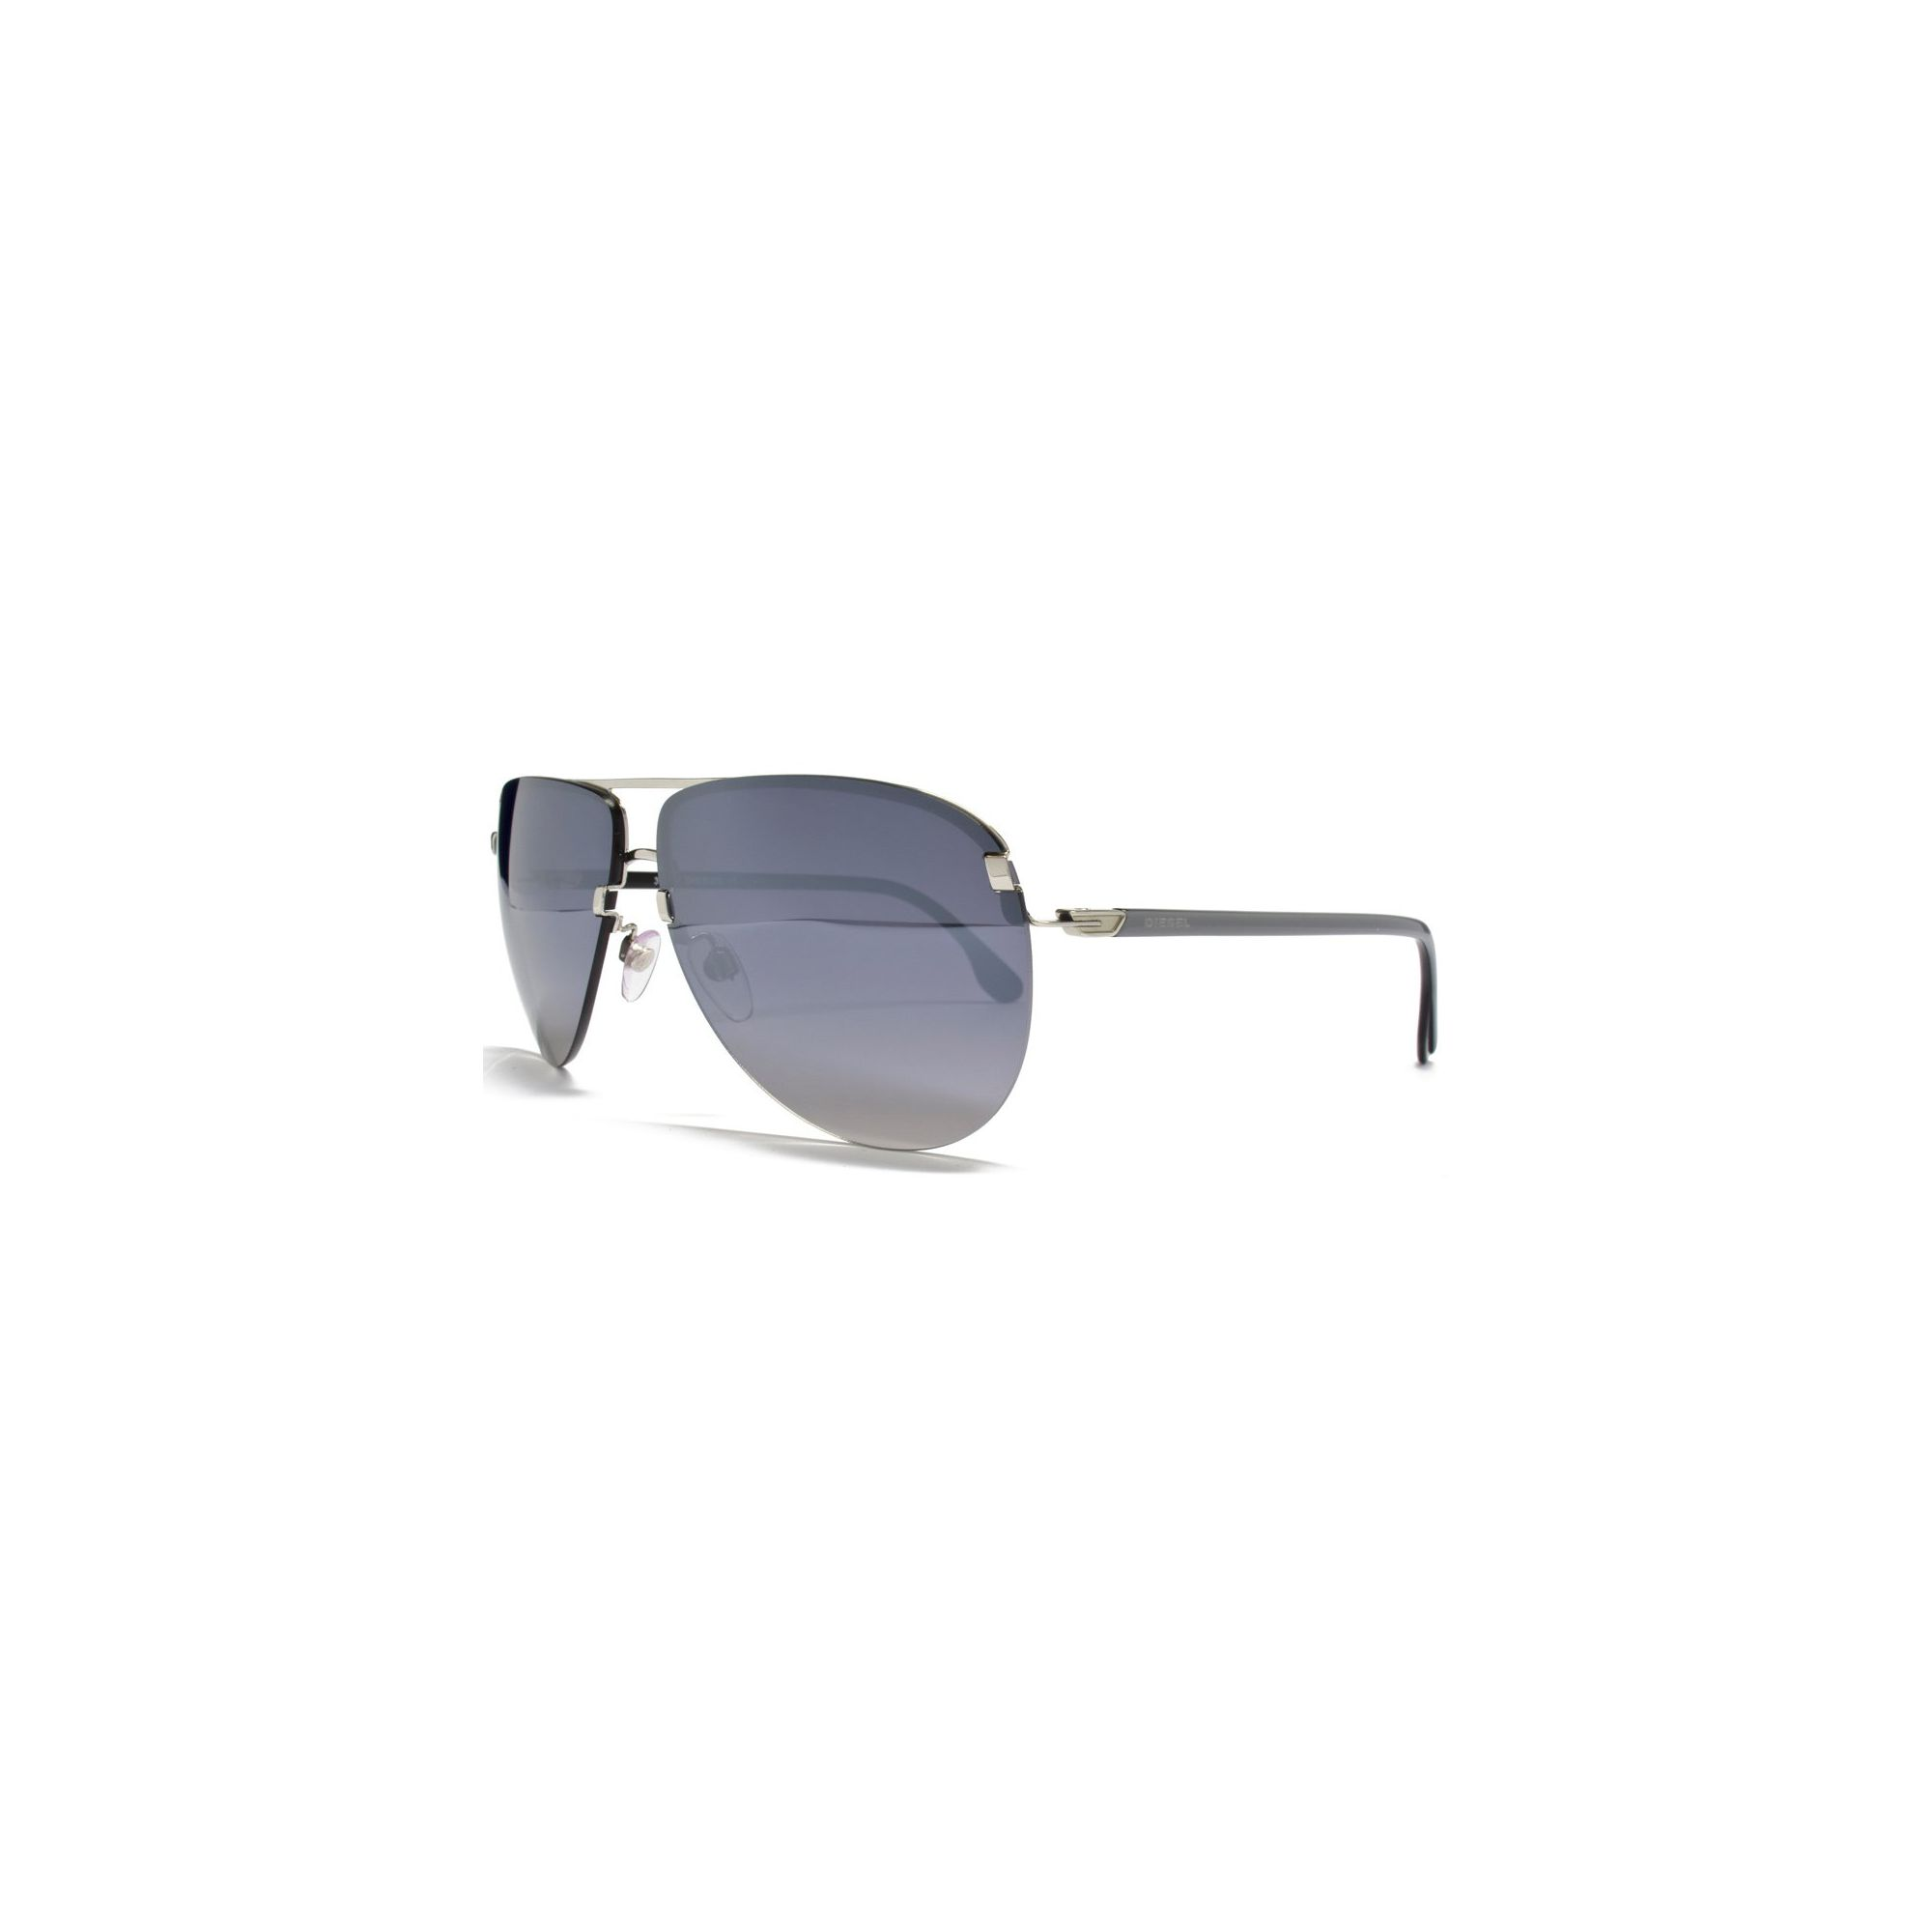 Rimless Glasses At Tesco : Fashion > Clothing accessories > Men: Diesel Sunglasses ...